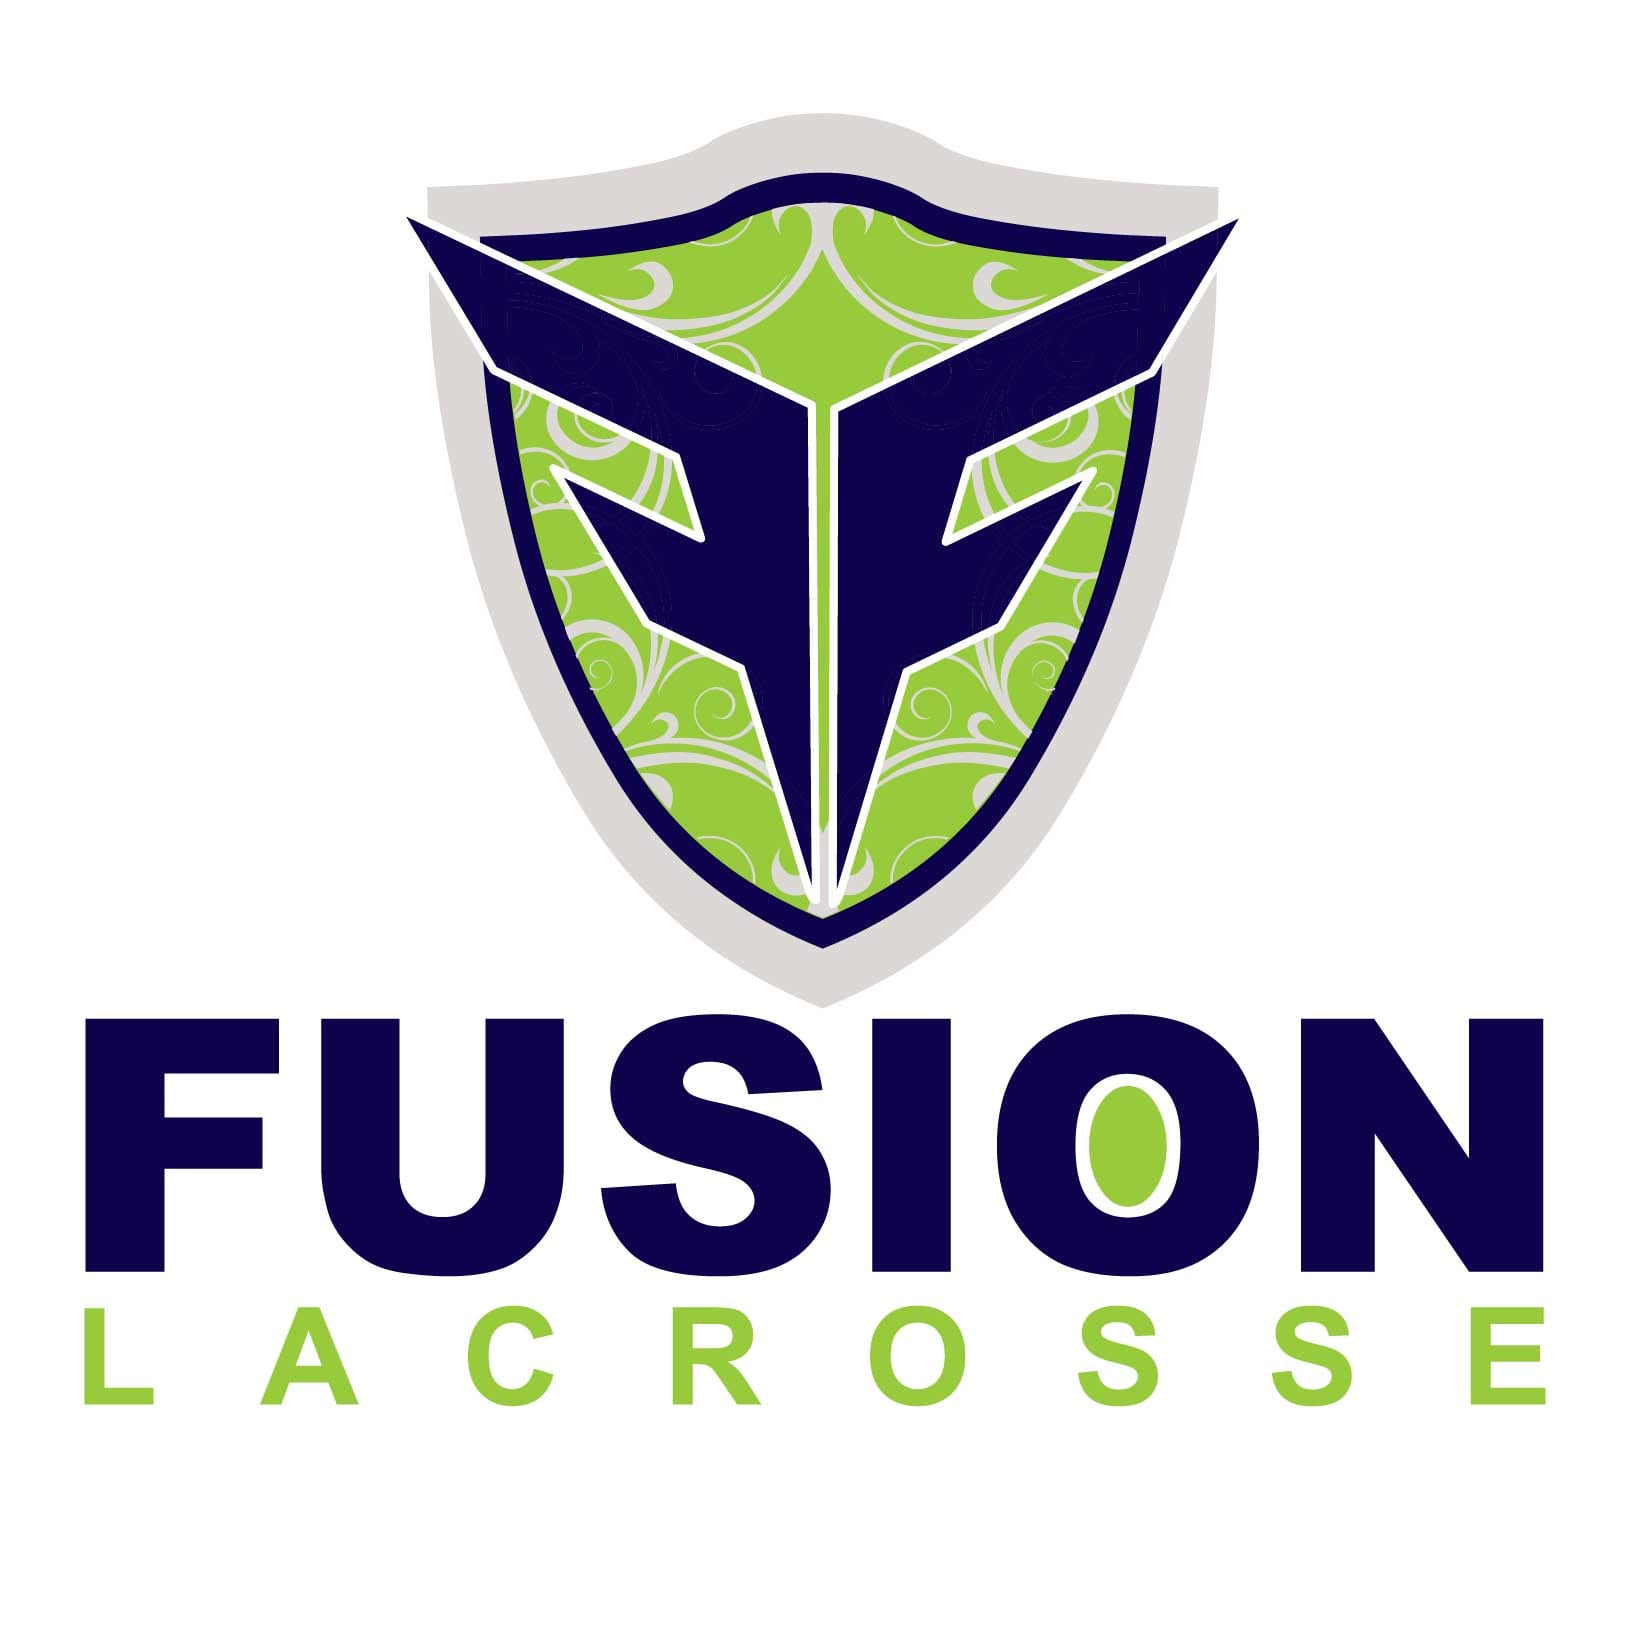 FRONT 2017 Fusion Winter Classic vector logo design for lacrosse t-shirt UrArtStudio